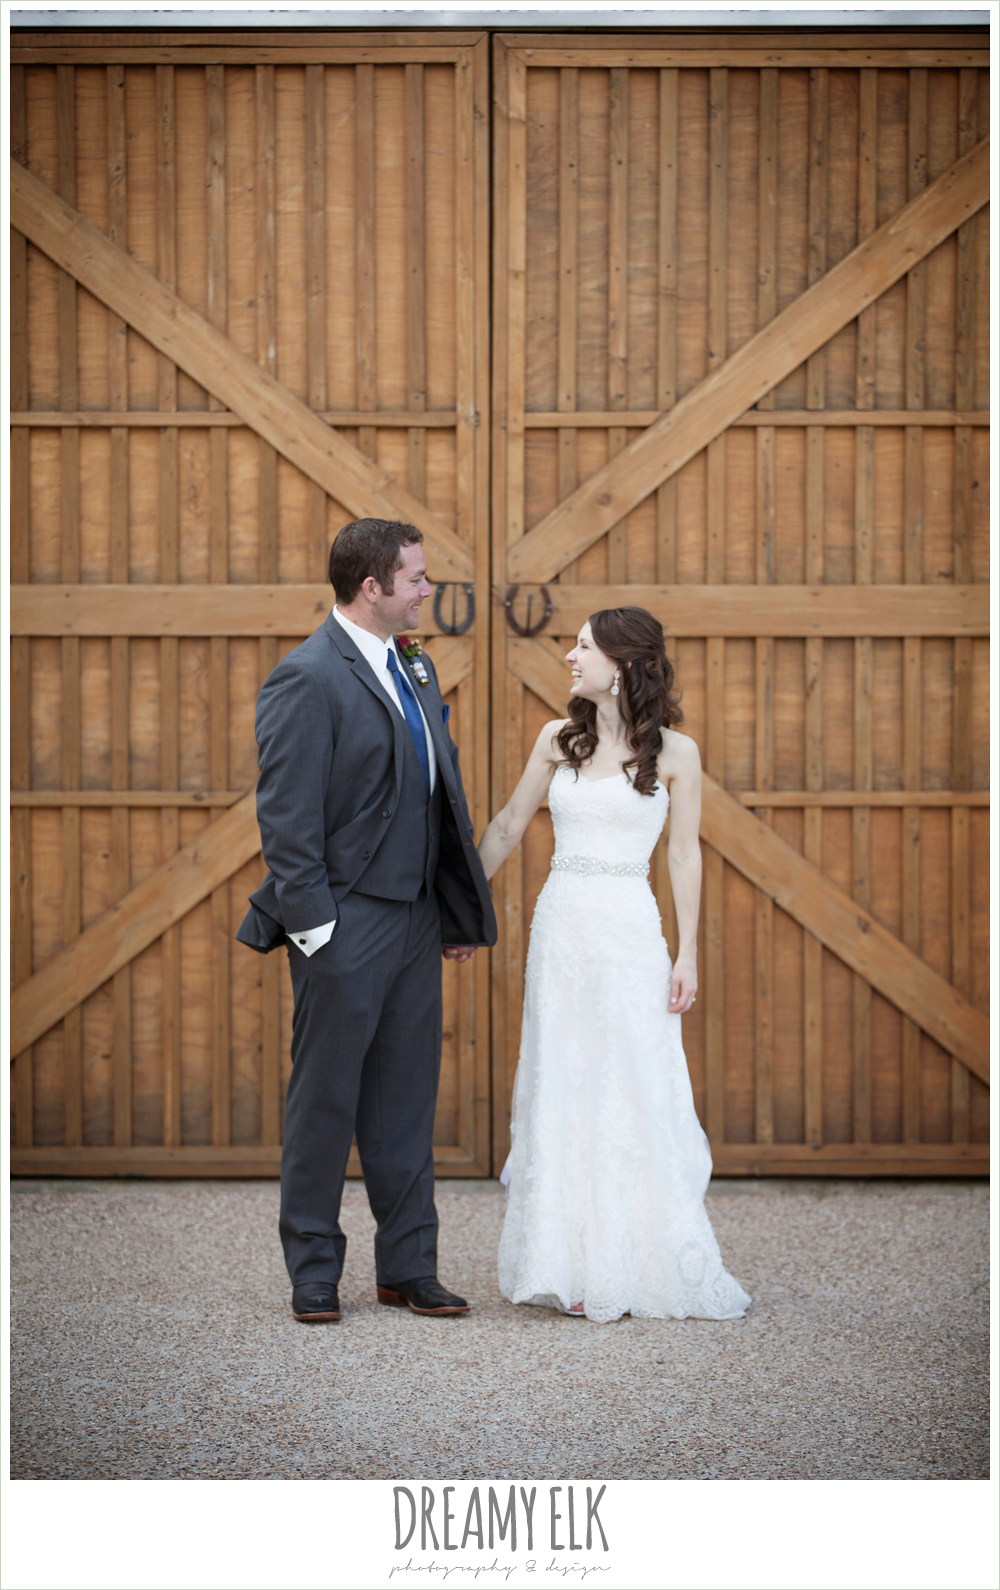 bride and groom laughing in front of a barn door, strapless lace wedding dress with belt, gray suit and navy tie, pine lake ranch, rustic wedding photo {dreamy elk photography and design}